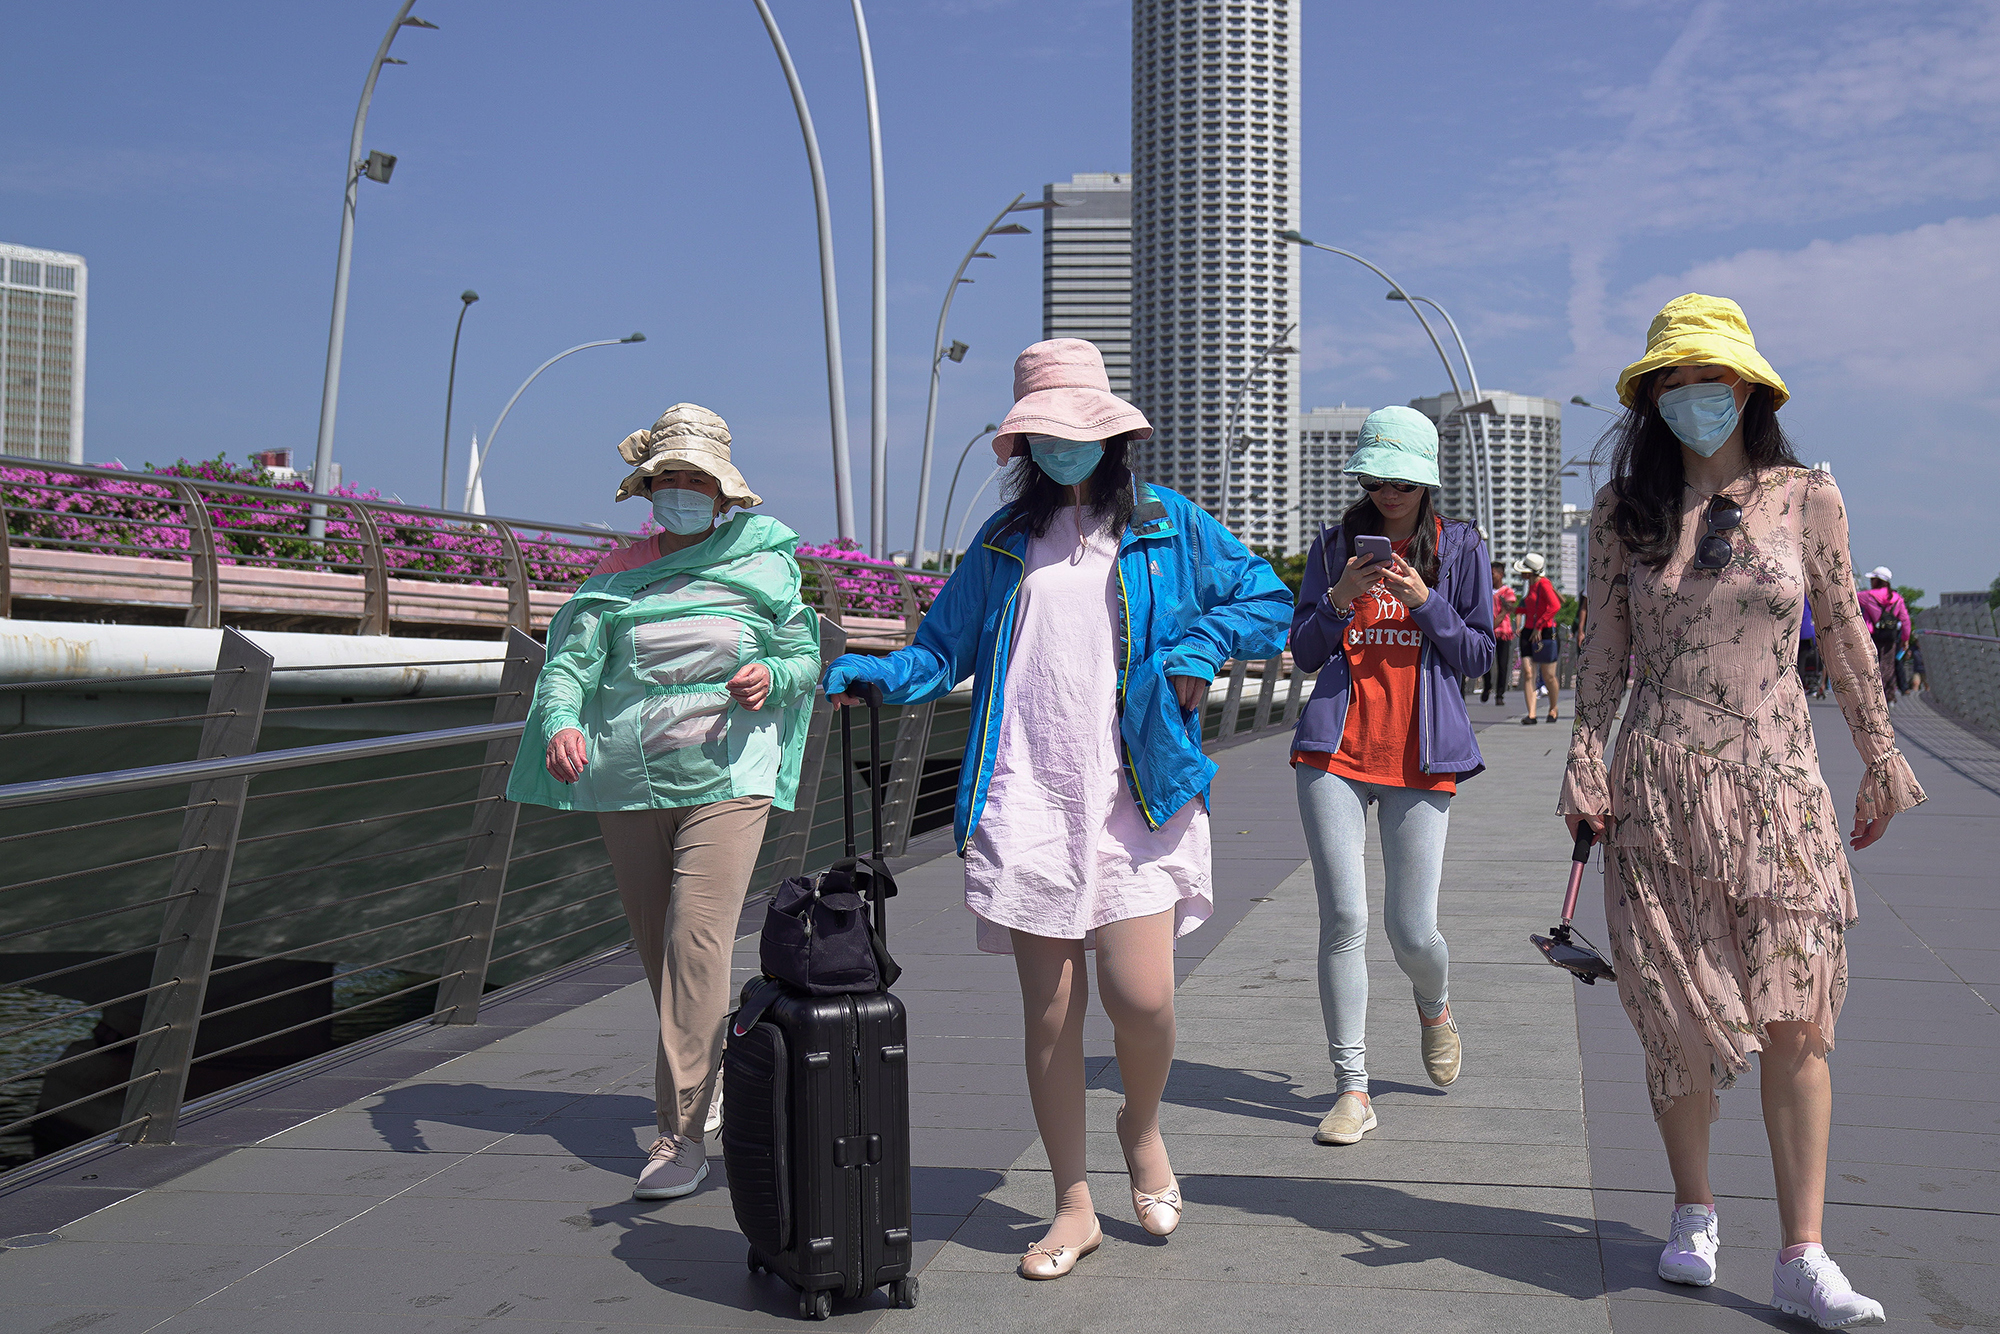 Visitors wearing masks walk through the Merlion Park on January 26 in Singapore.